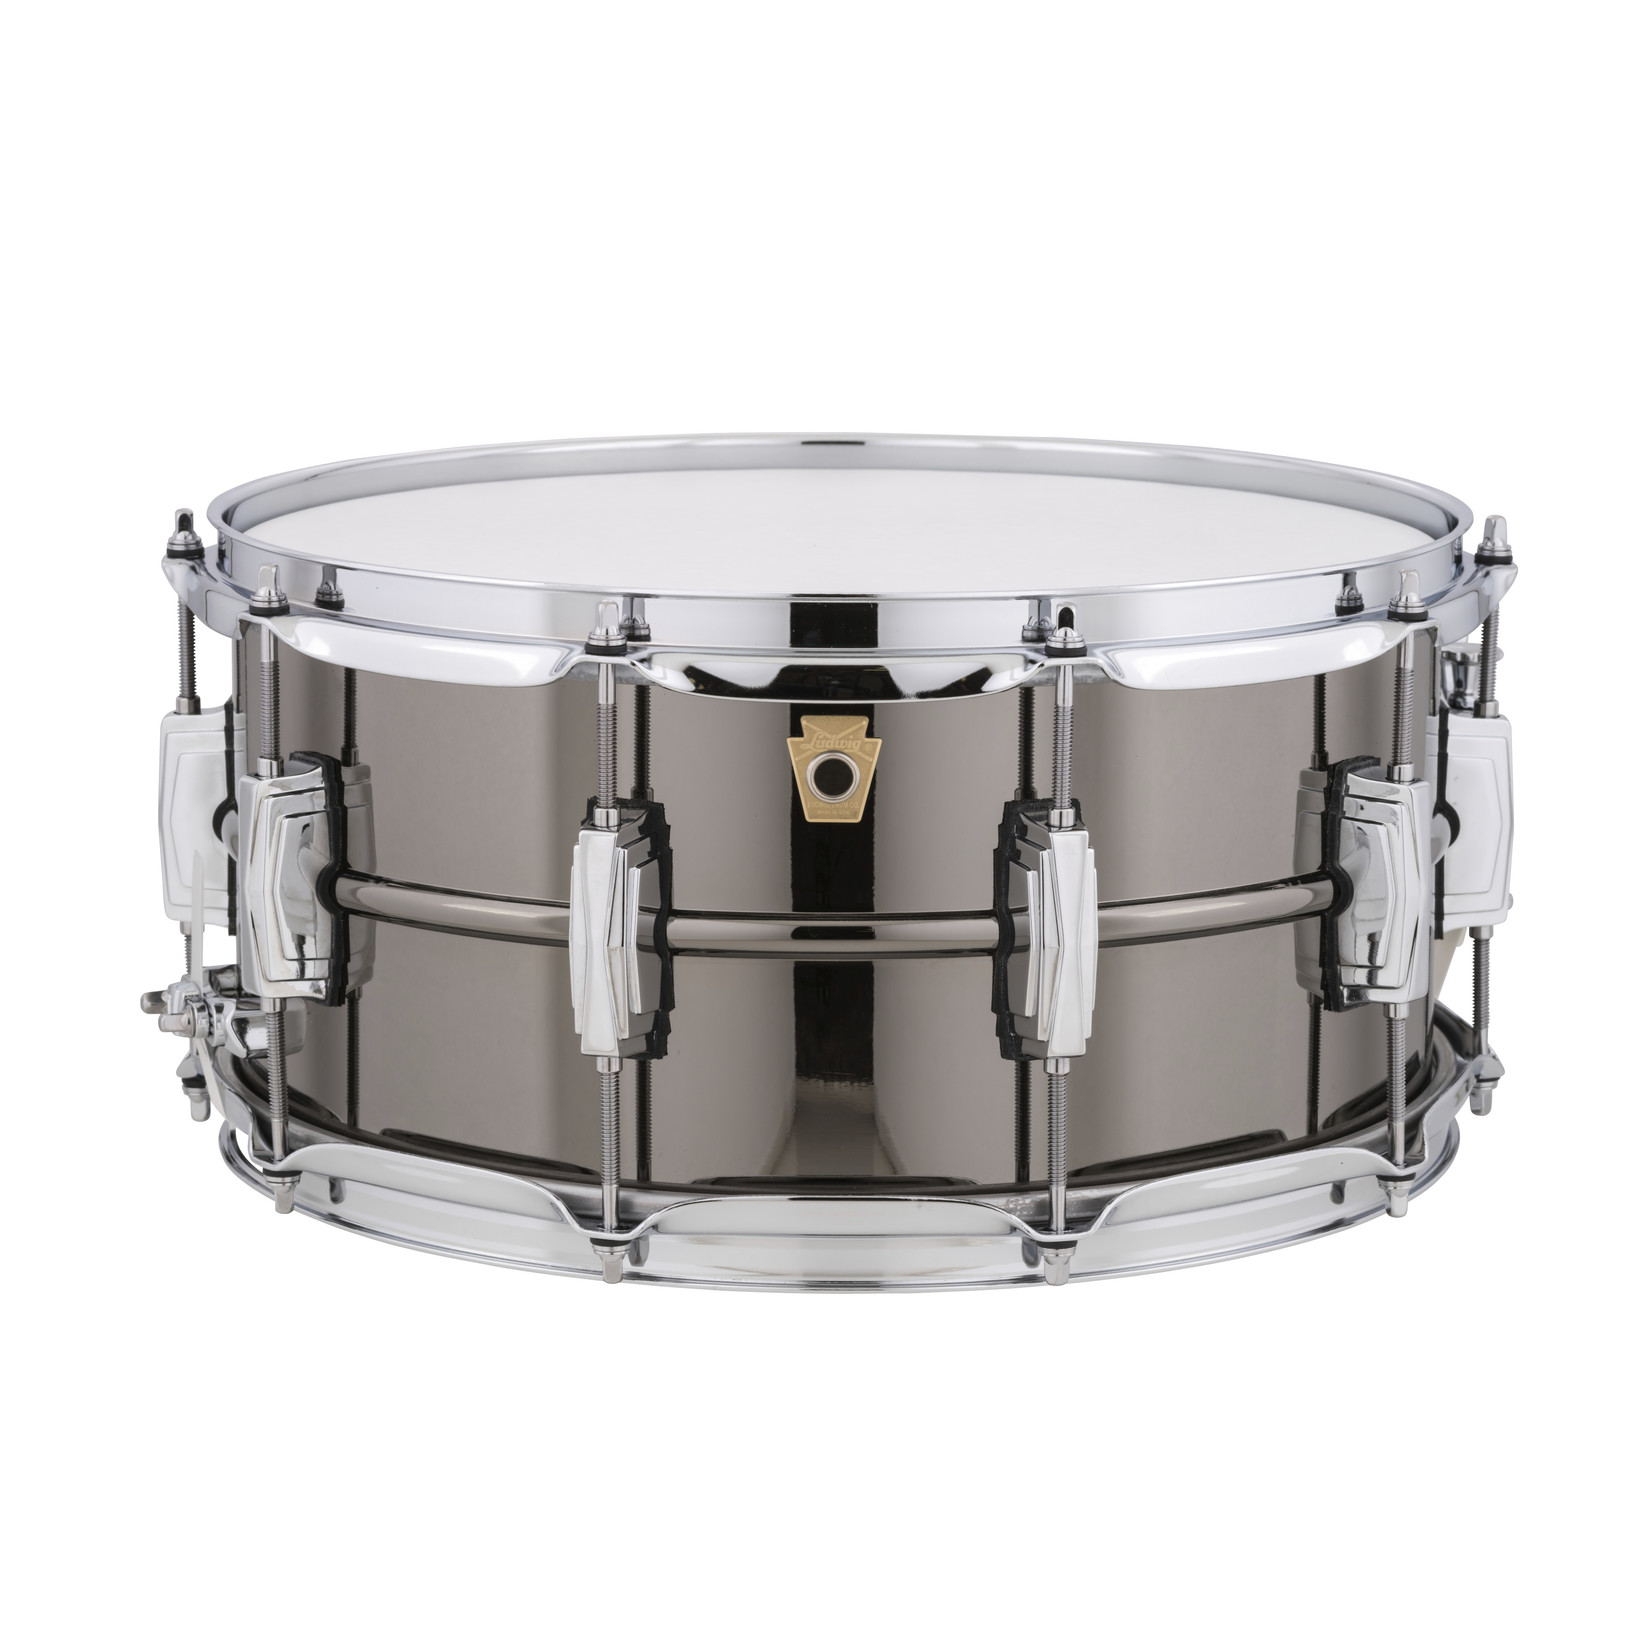 """Ludwig Ludwig 6.5x14 Supraphonic """"Black Beauty"""" Snare Drum / Imperial Lugs / Smooth Shell"""